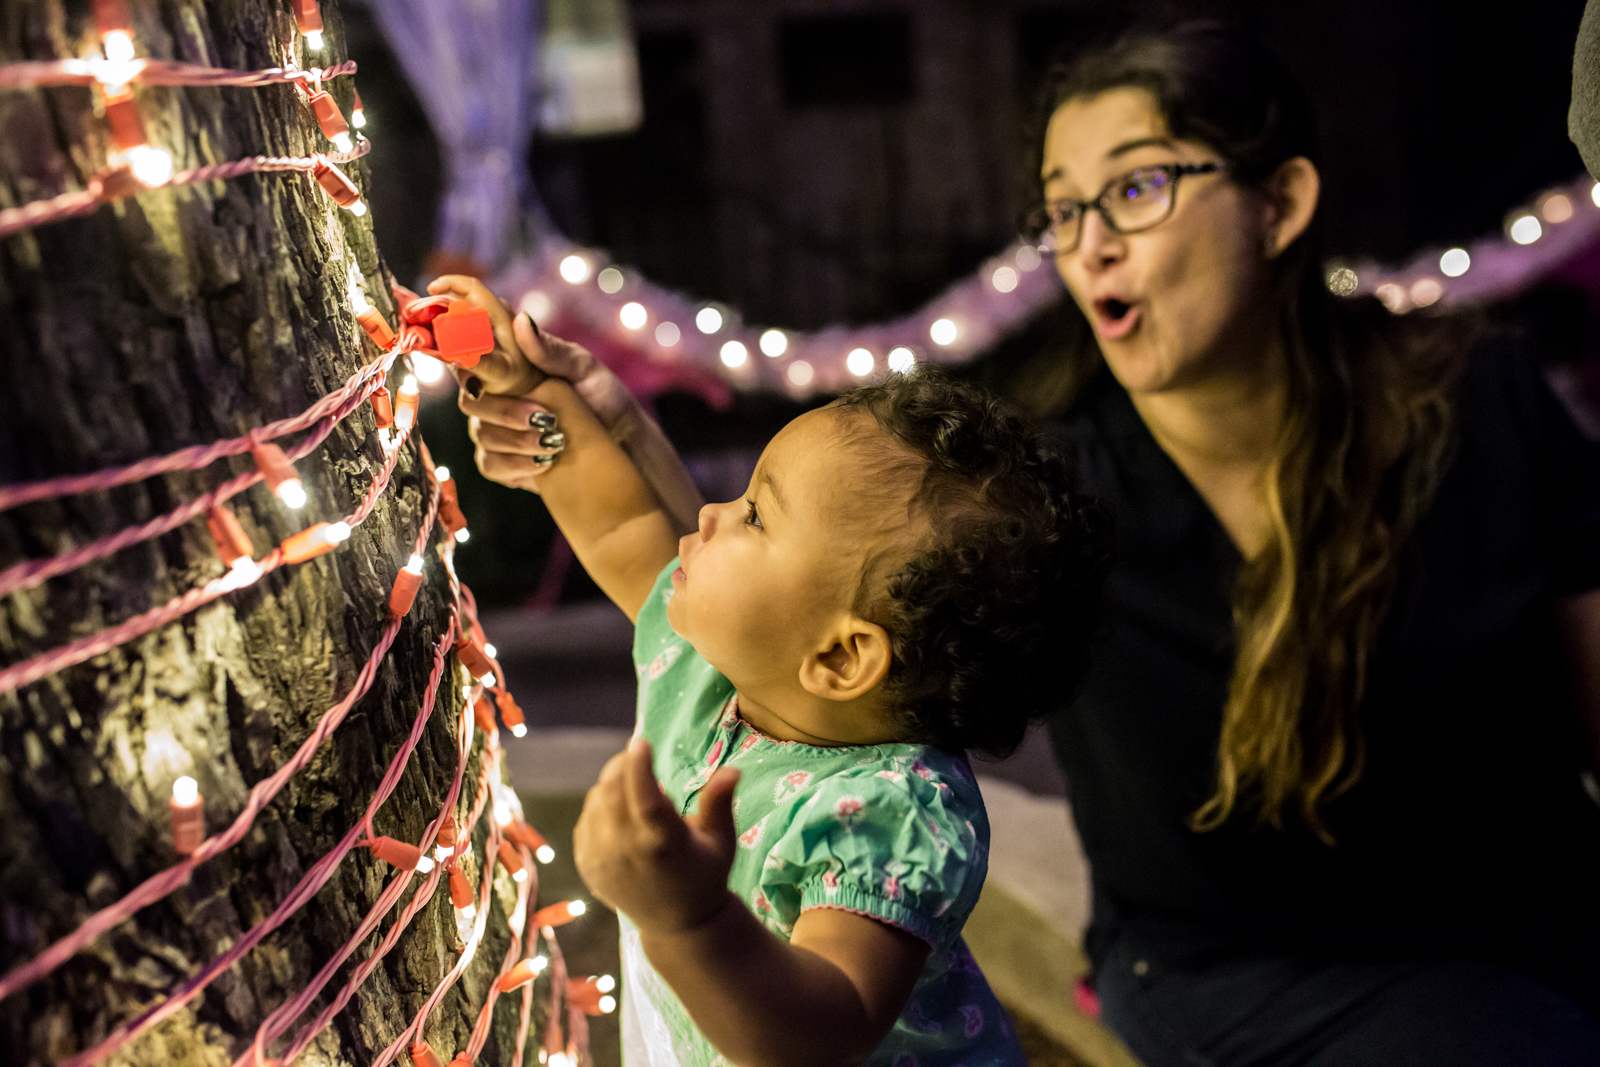 Lawren Rose Photography captures a photograph of a baby grabbing christmas lights and the Mom looking very scared